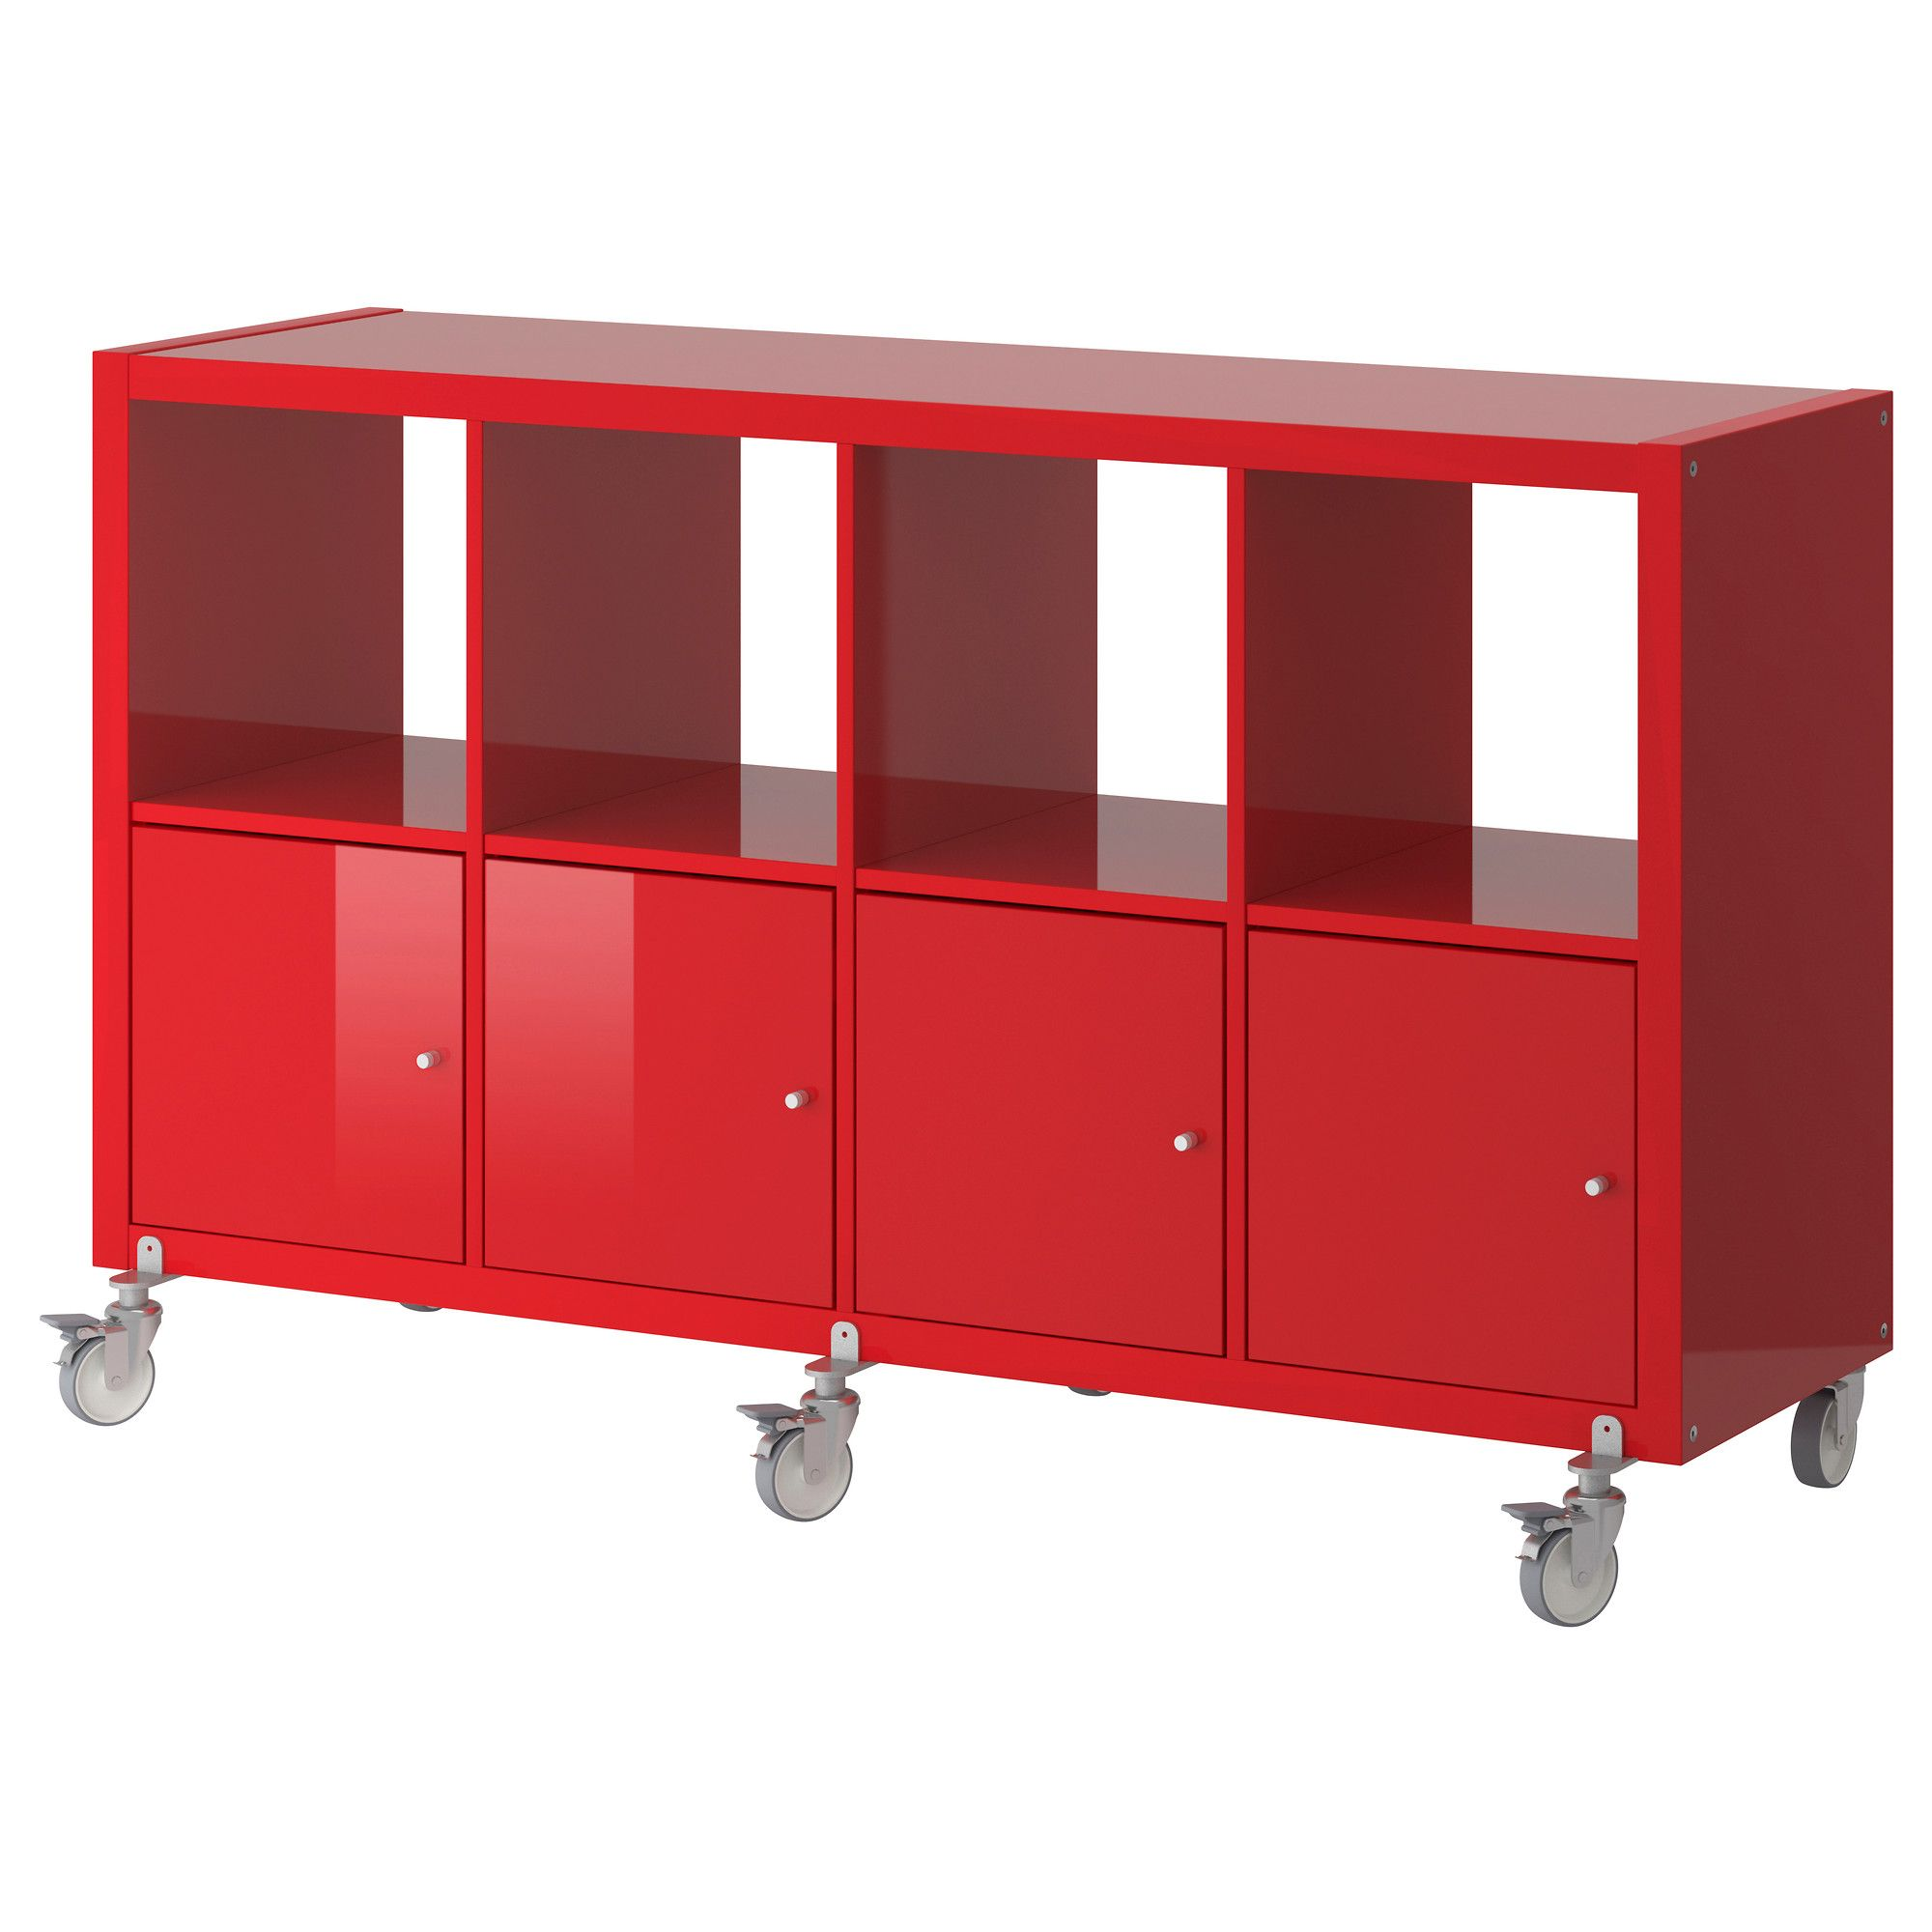 Us Furniture And Home Furnishings Ikea Shelving Unit Kallax Shelving Unit Ikea Shelf Unit